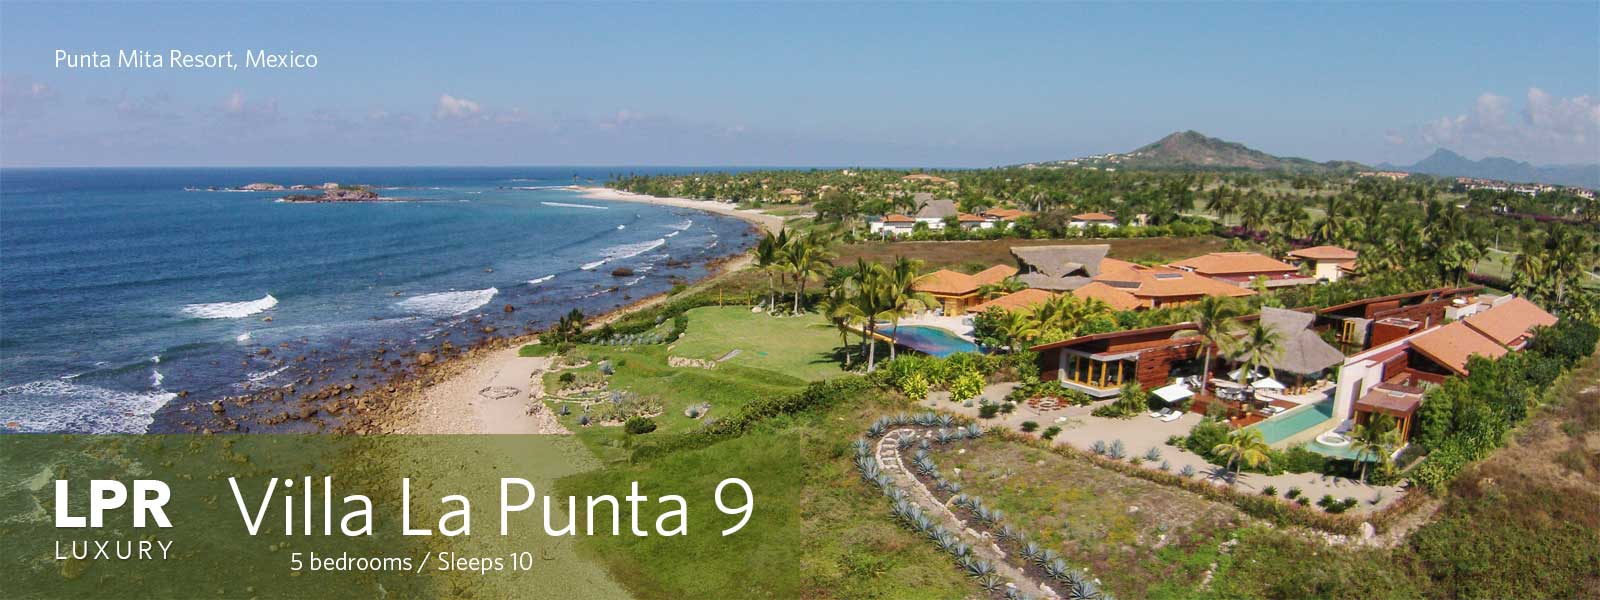 Villa La Punta 9 at the Punta Mita Resort - Luxury Punta Mita Real Estate and Vacation Rentals Villa